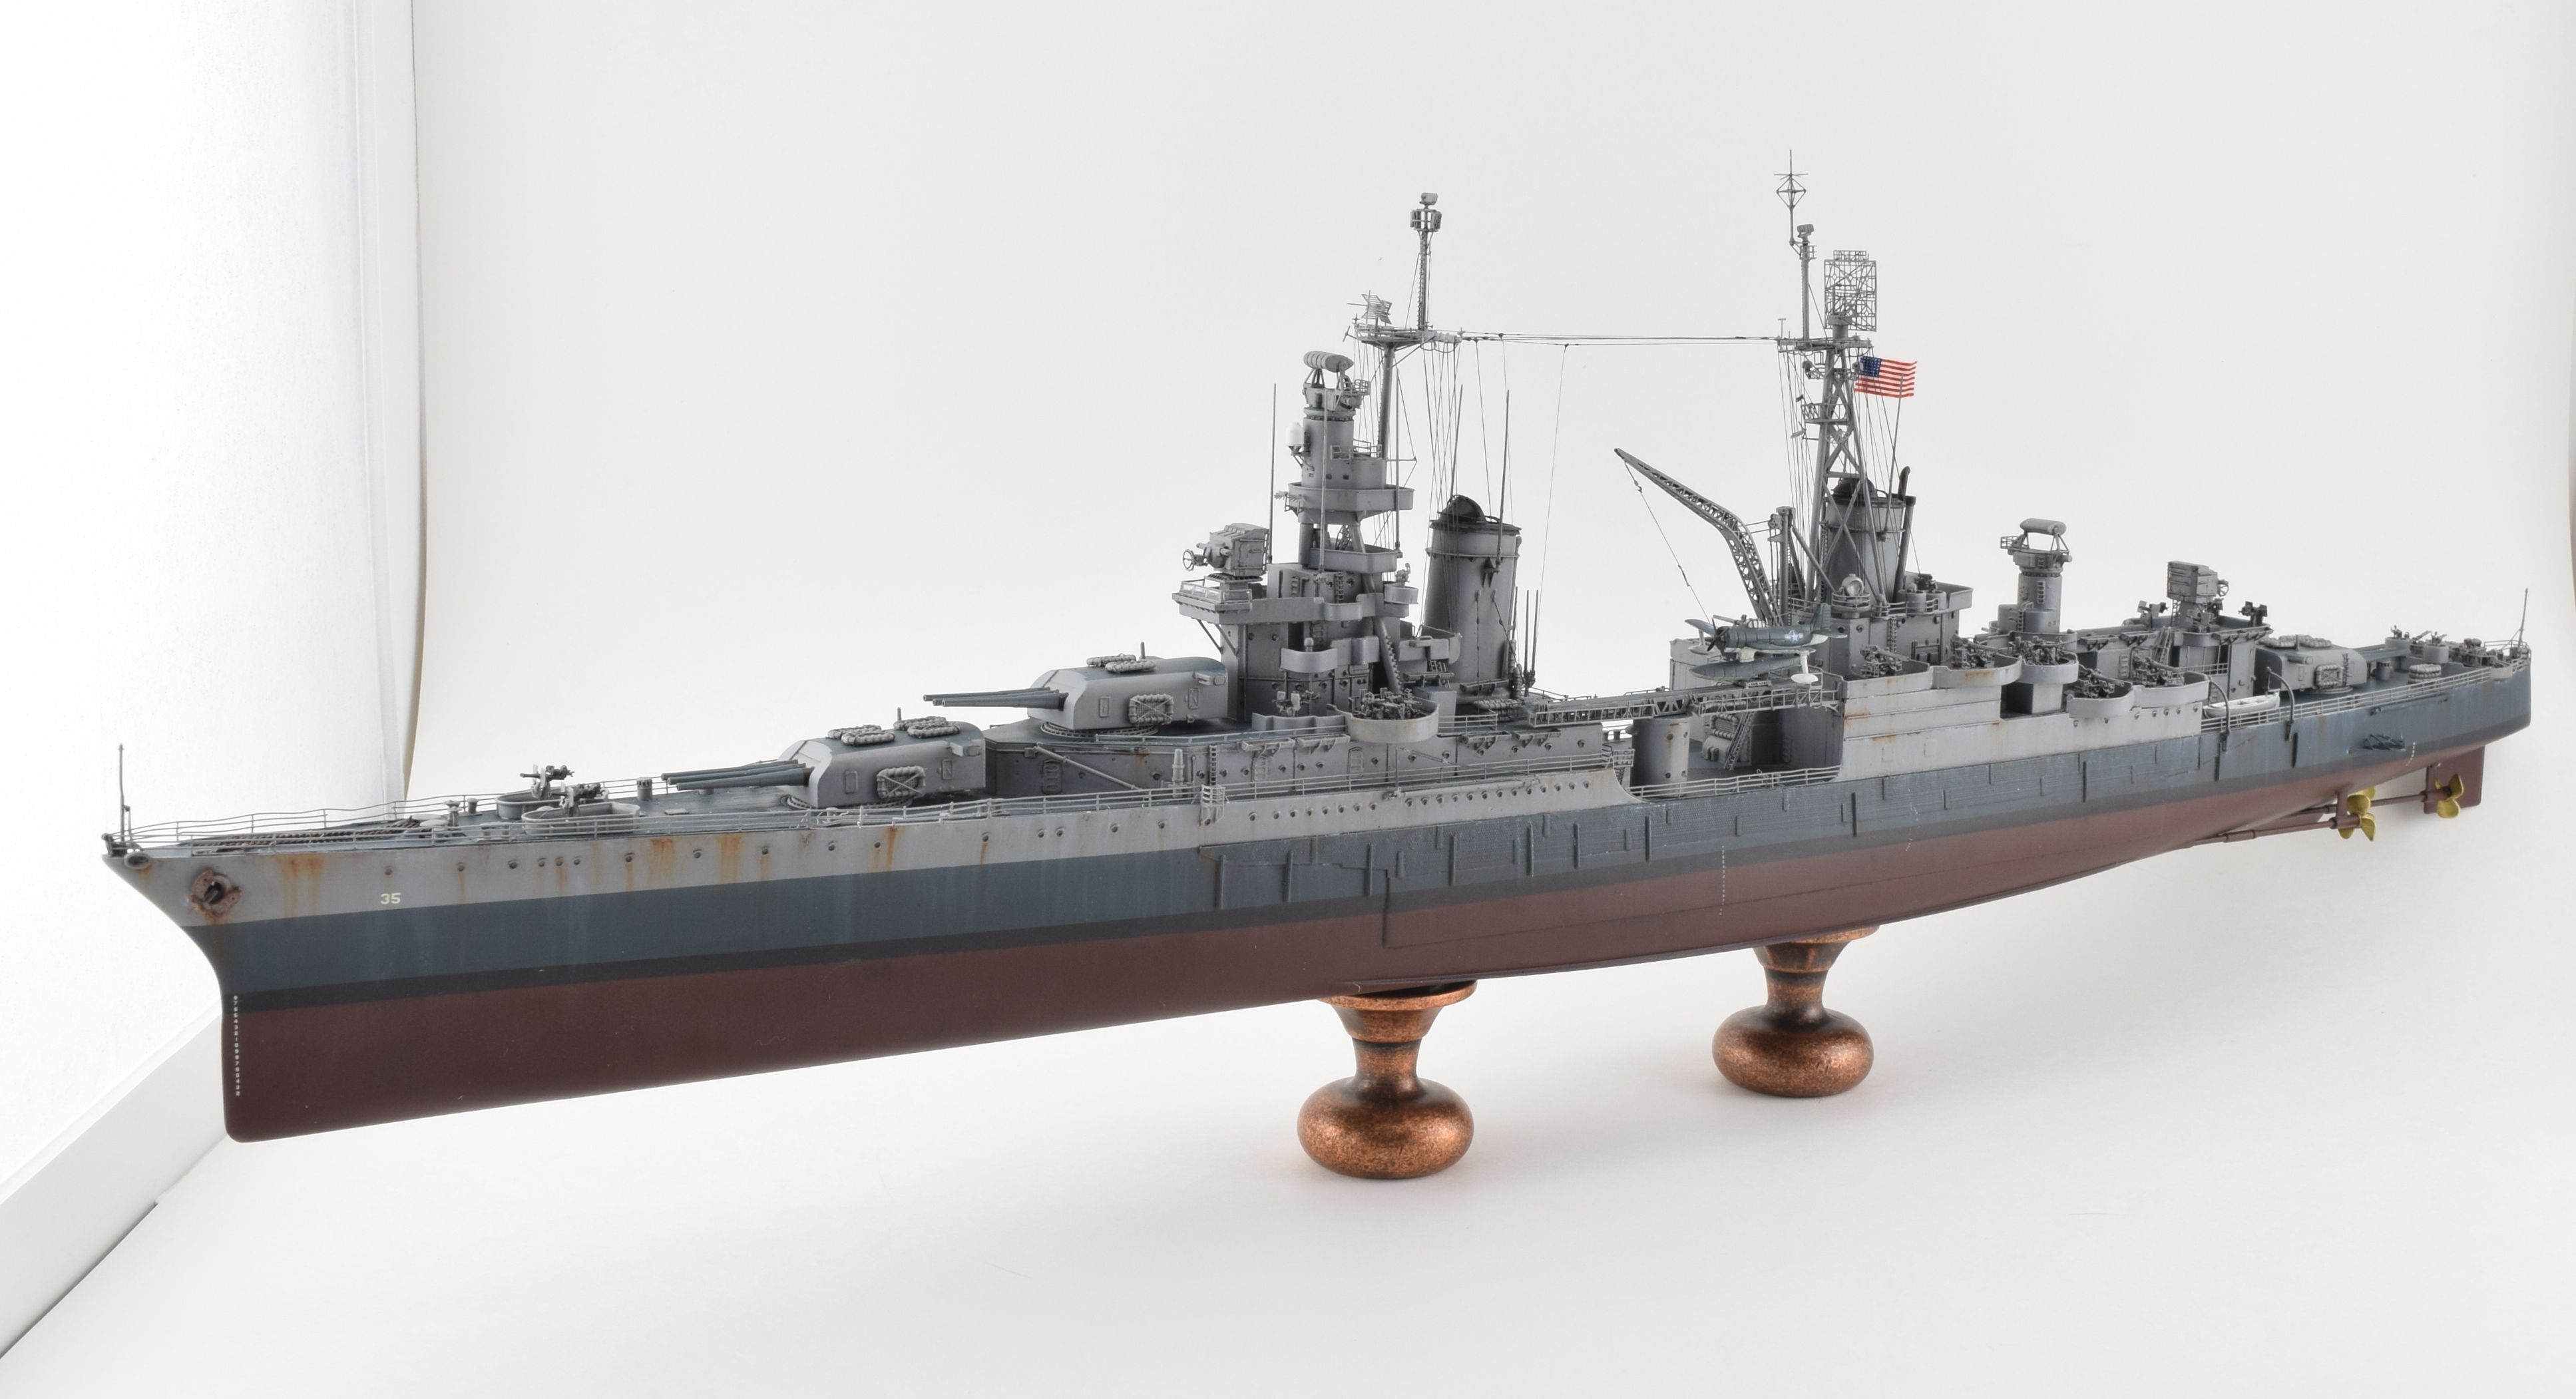 pin by roland on schiffsmodelle t model ships ship and